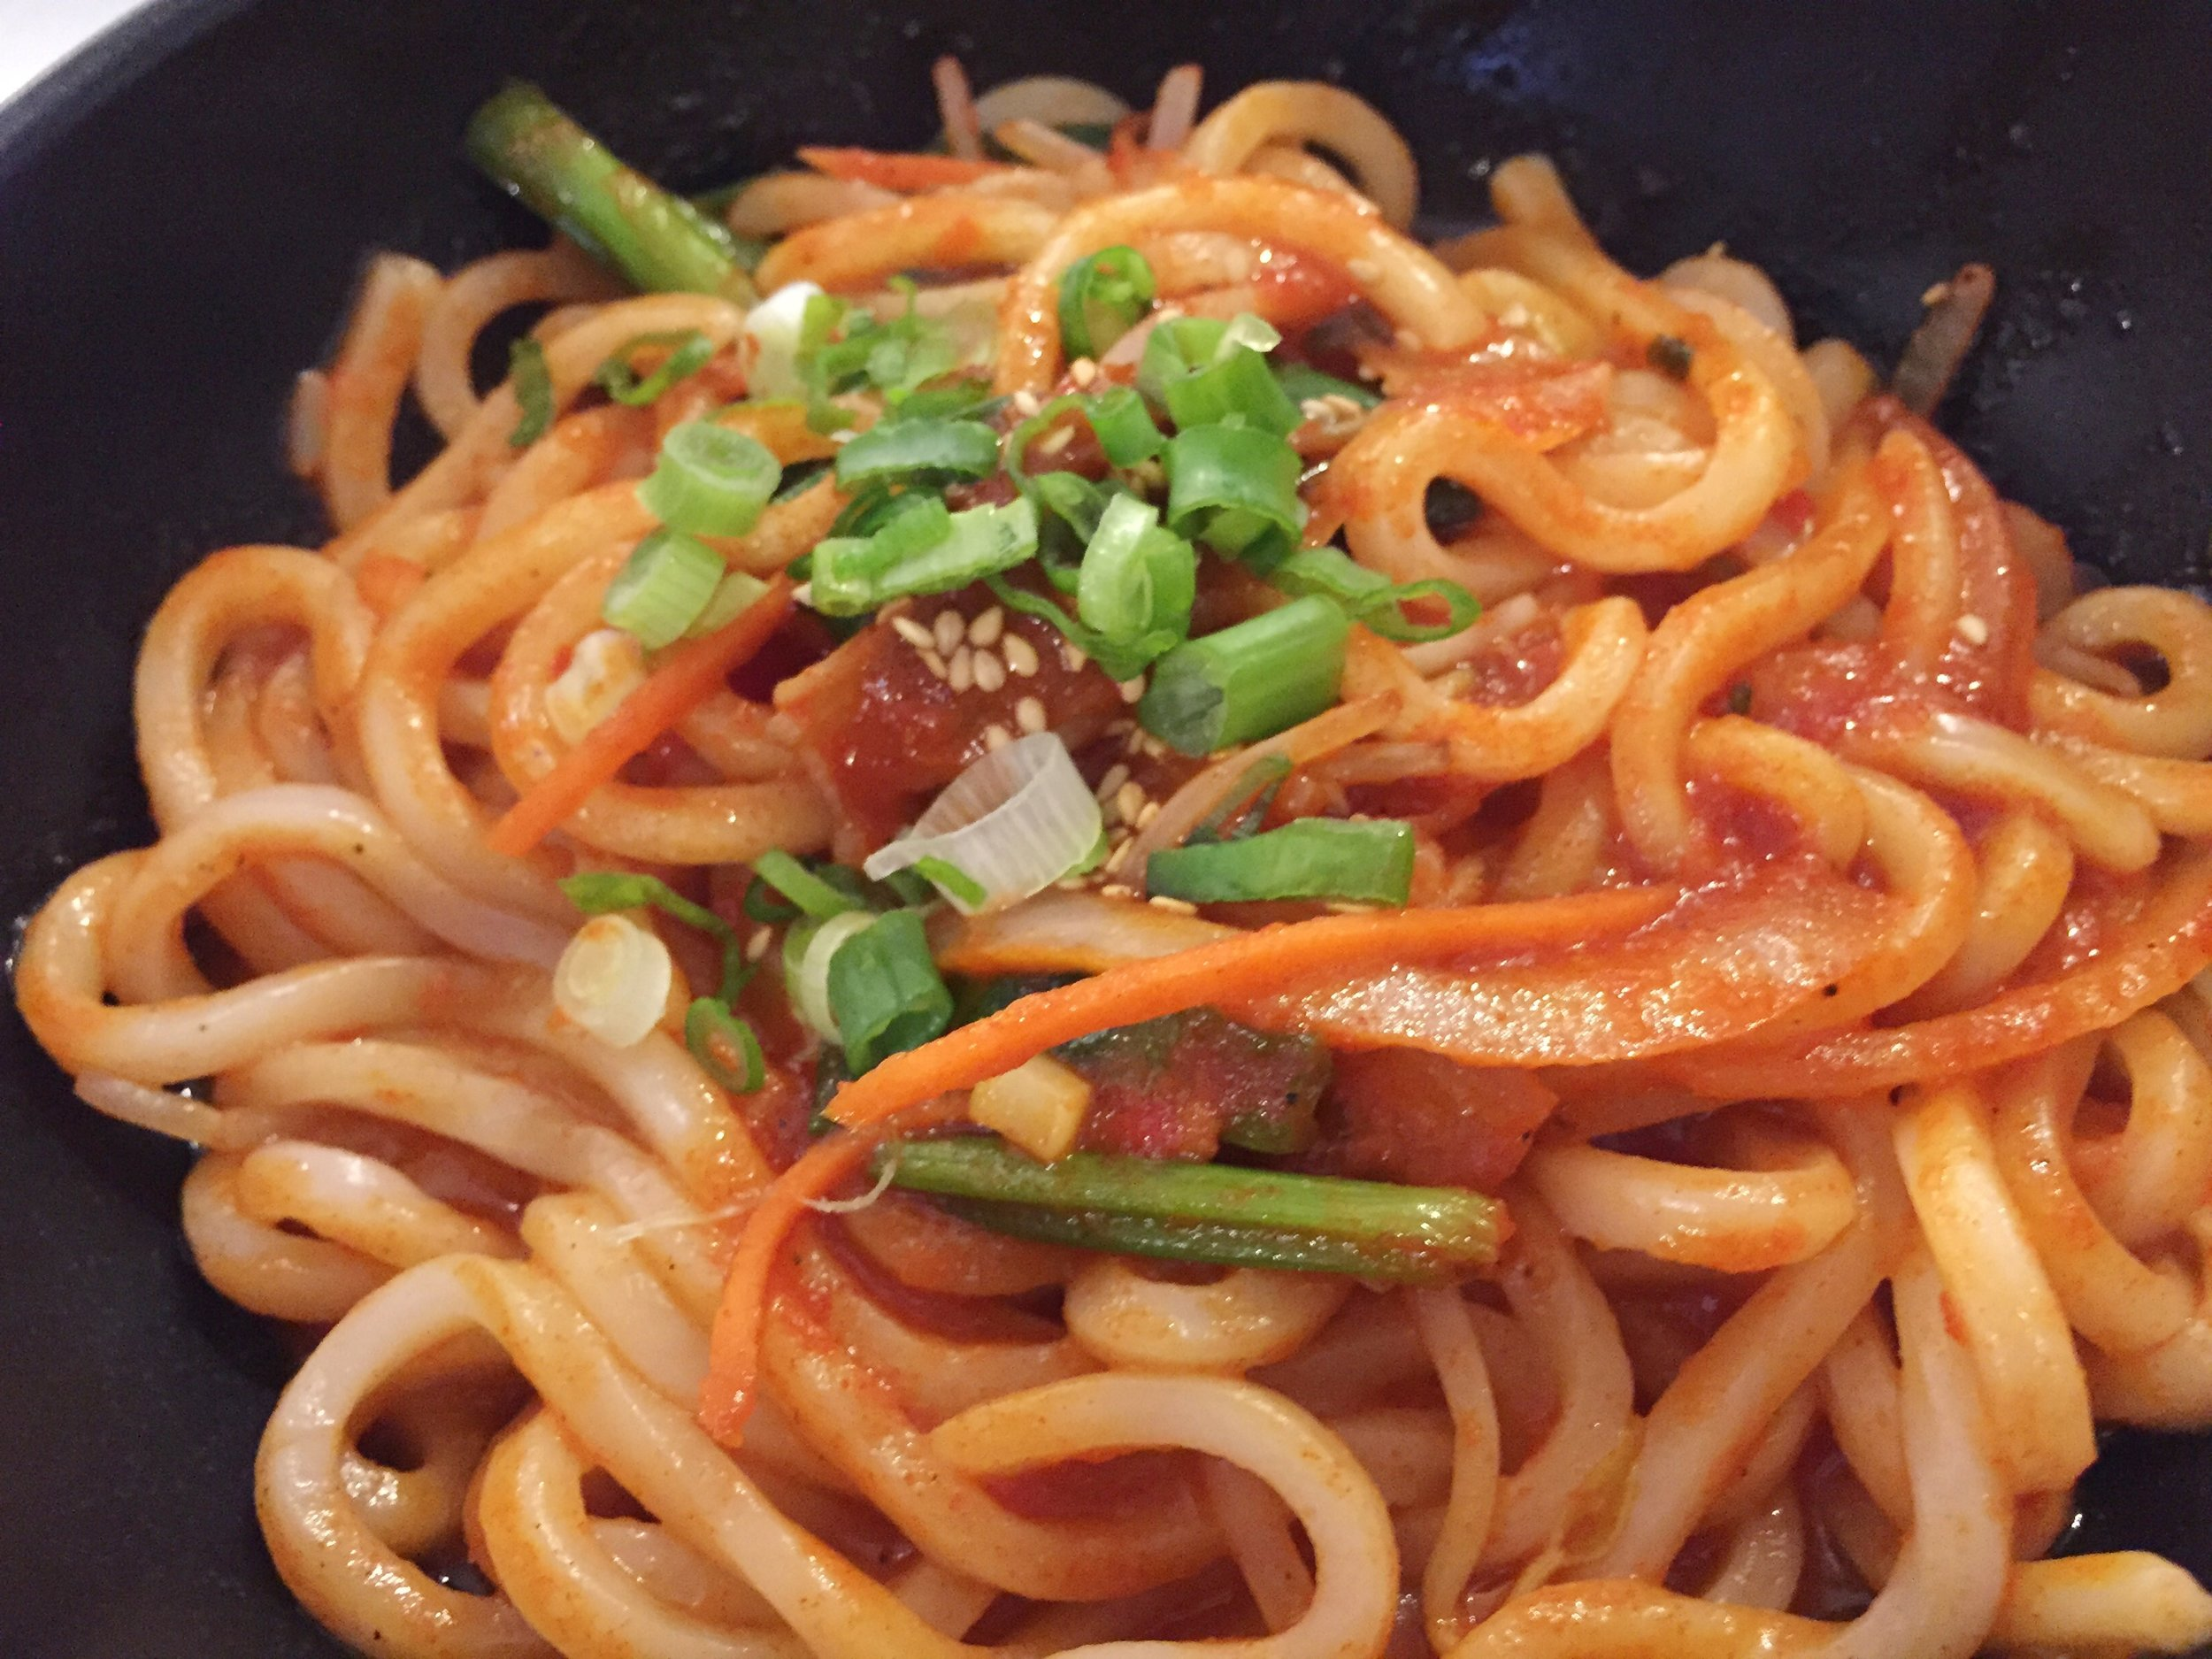 food-gallery-32-koreatown-nyc-kobeque-spicy-noodle